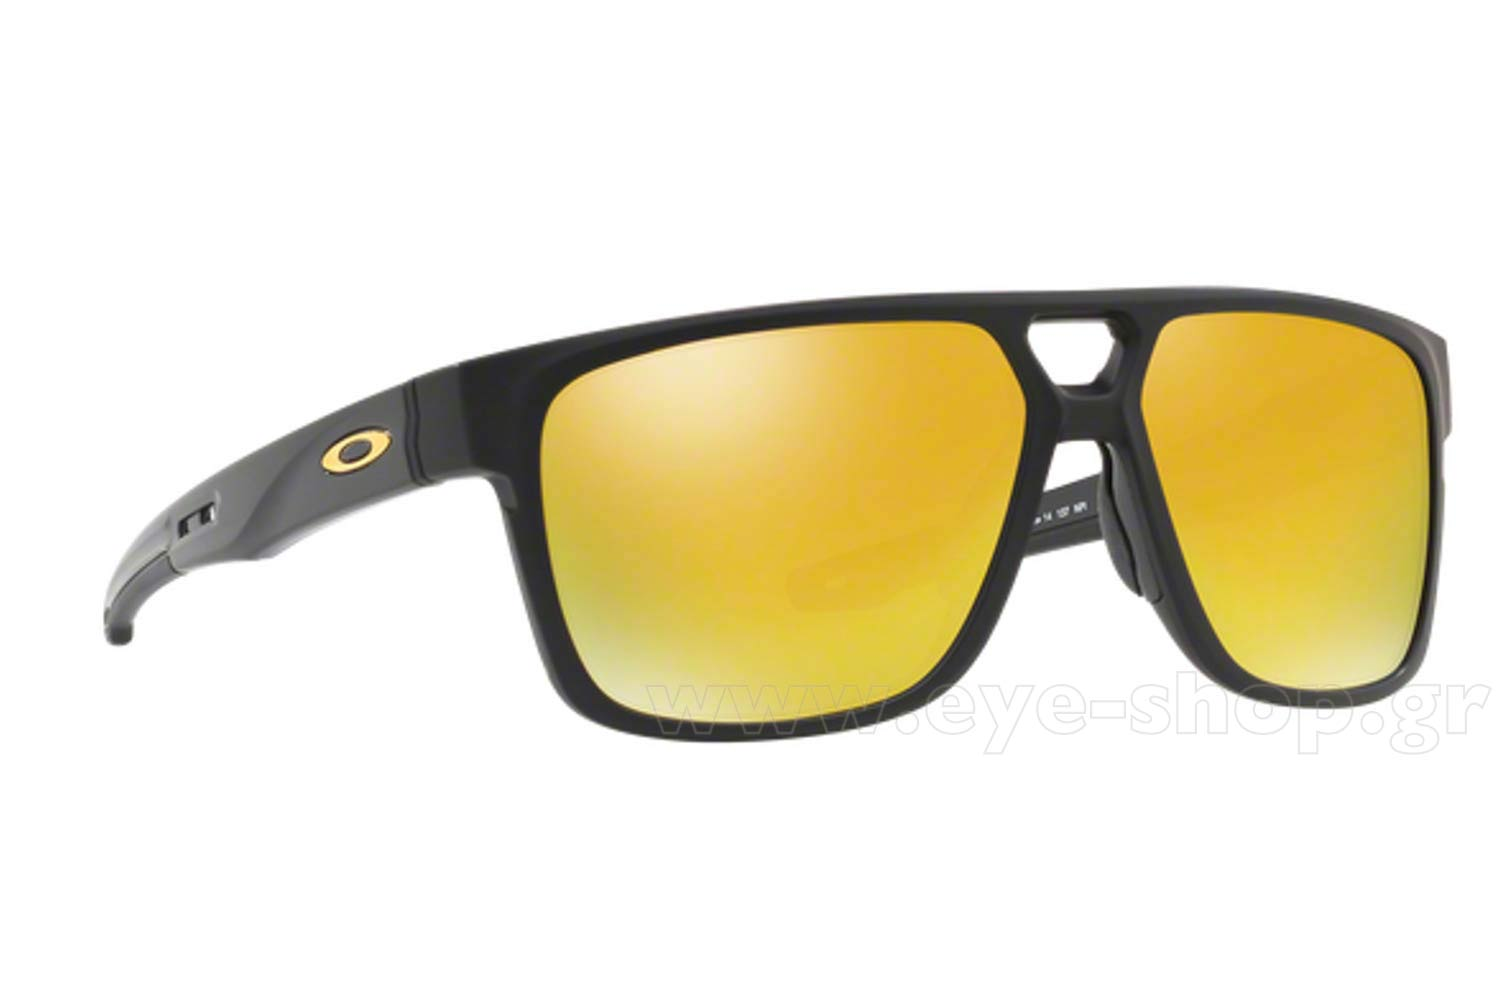 a85377df2ec SUNGLASSES Oakley CROSSRANGE PATCH 9382 04 Mt Black 24k Iridium